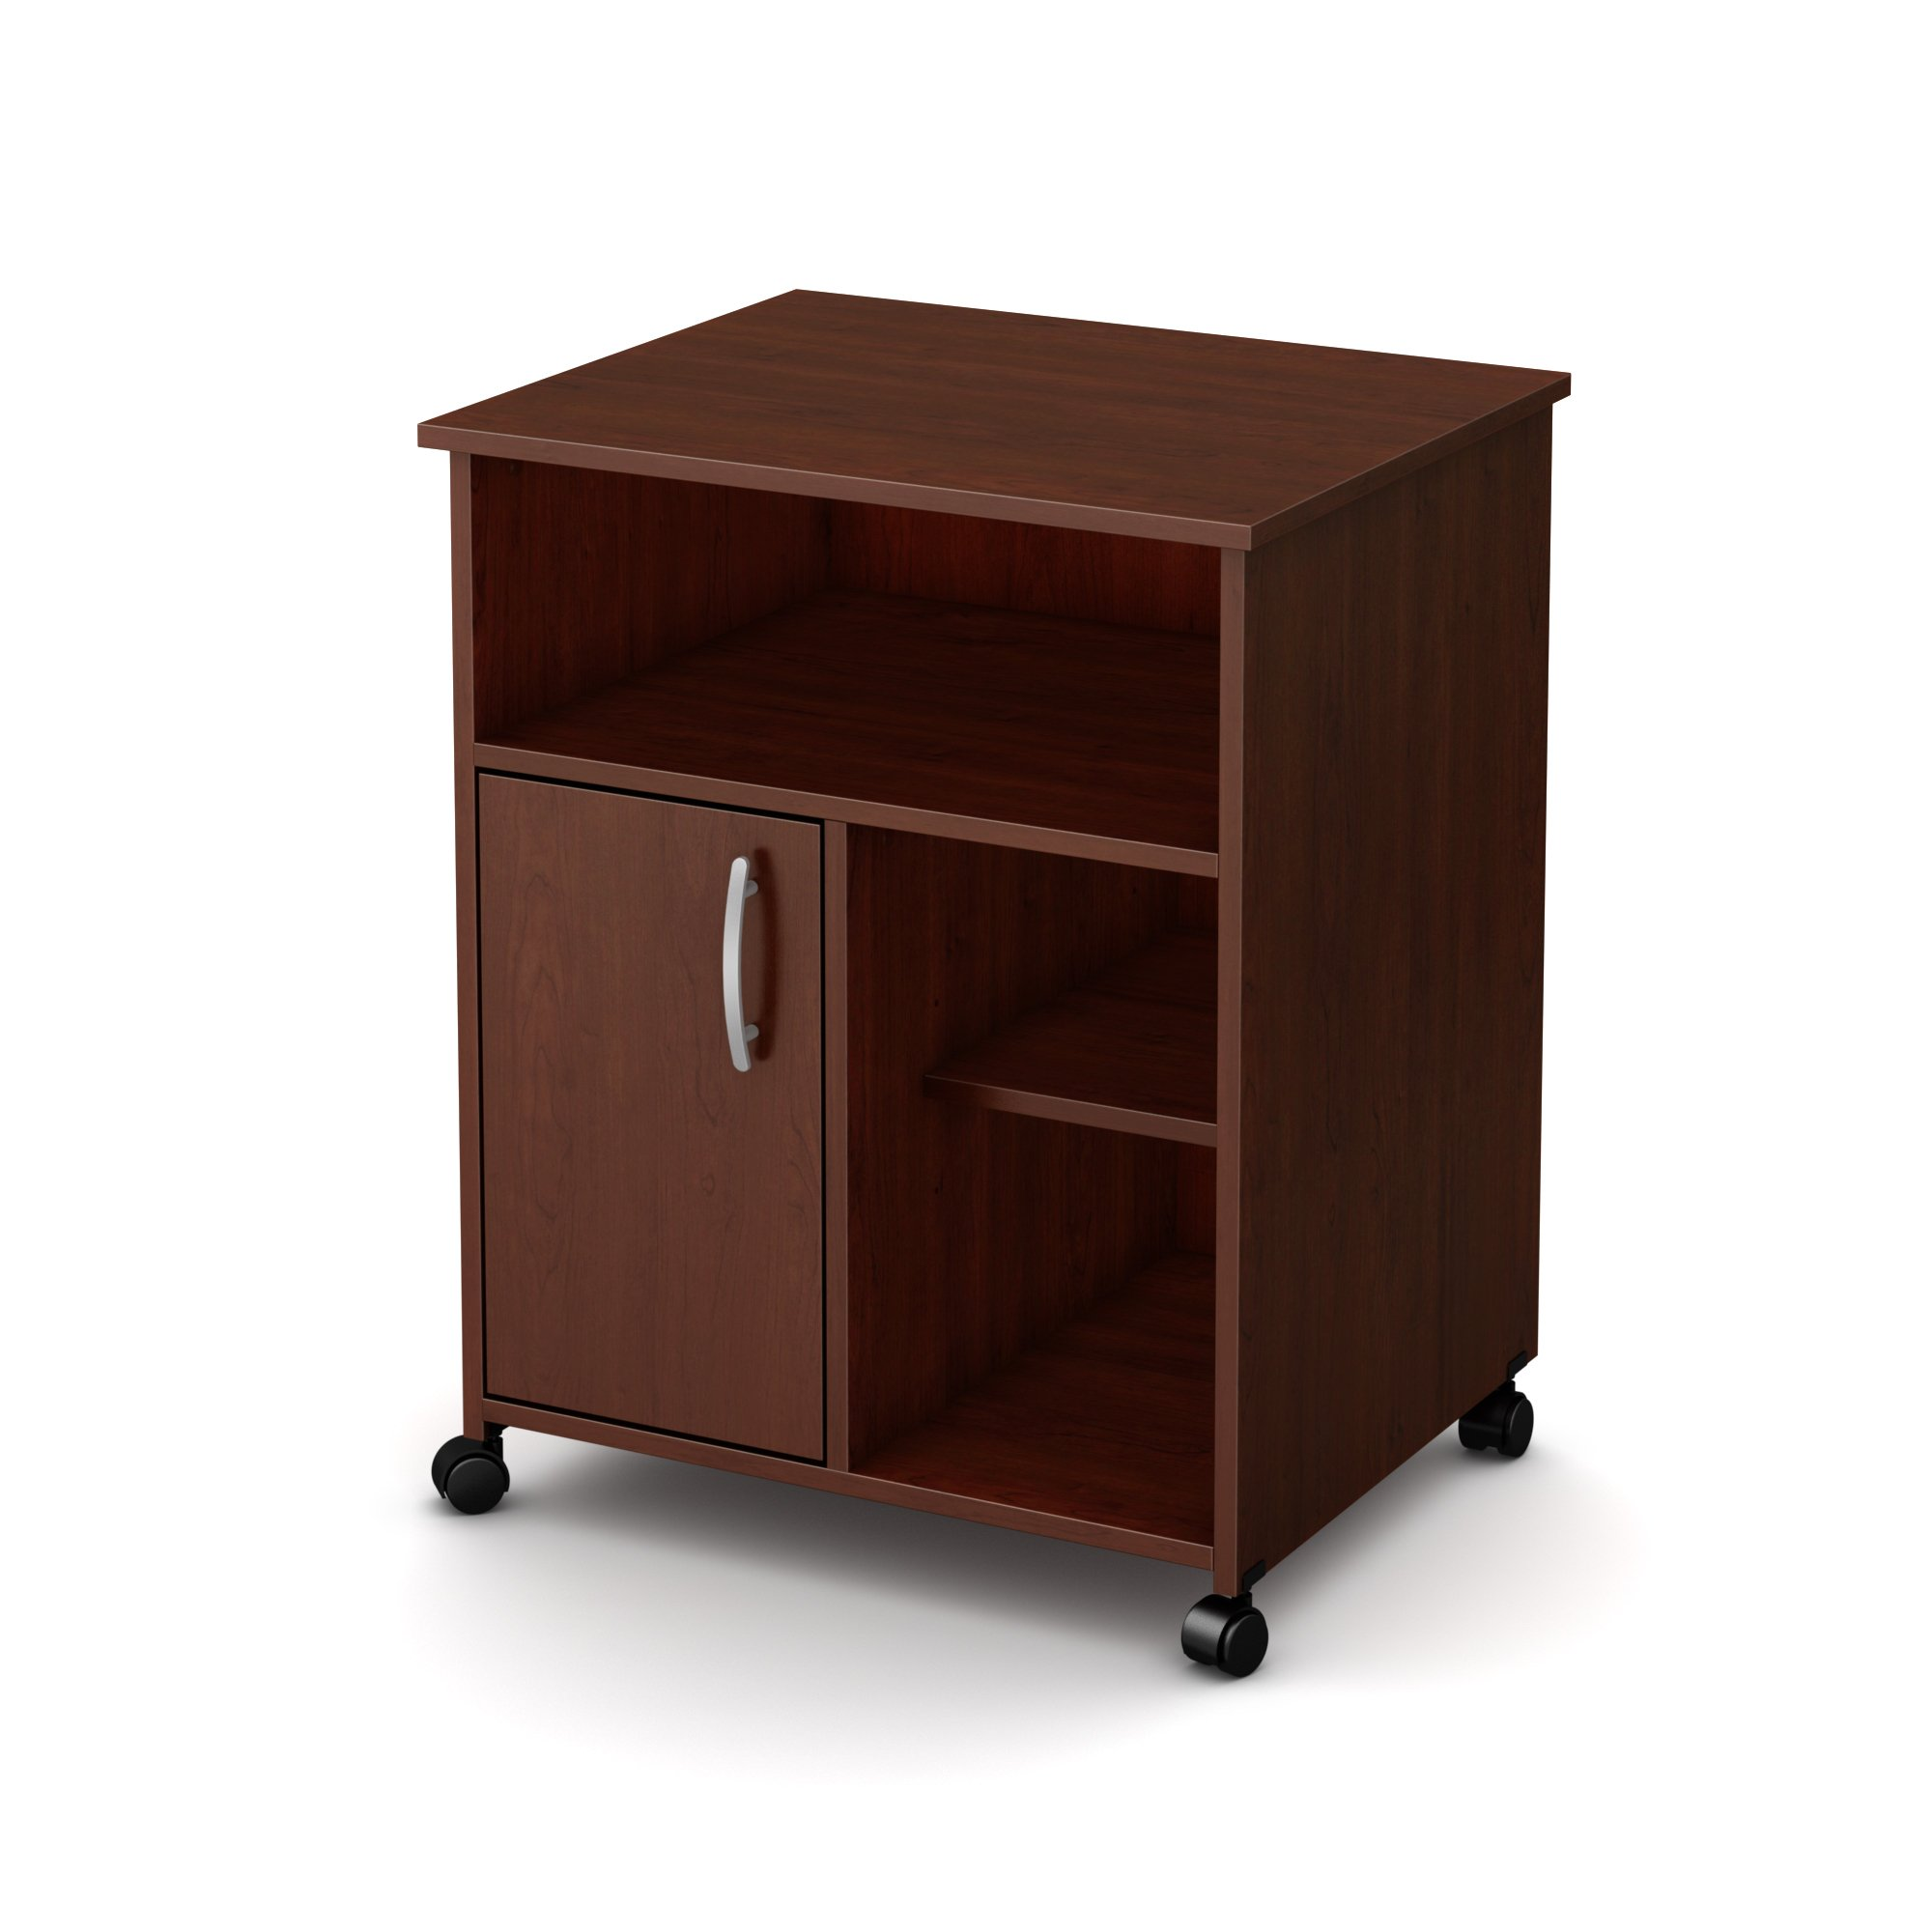 South Shore 1-Door Printer Stand with Storage on Wheels, Royal Cherry